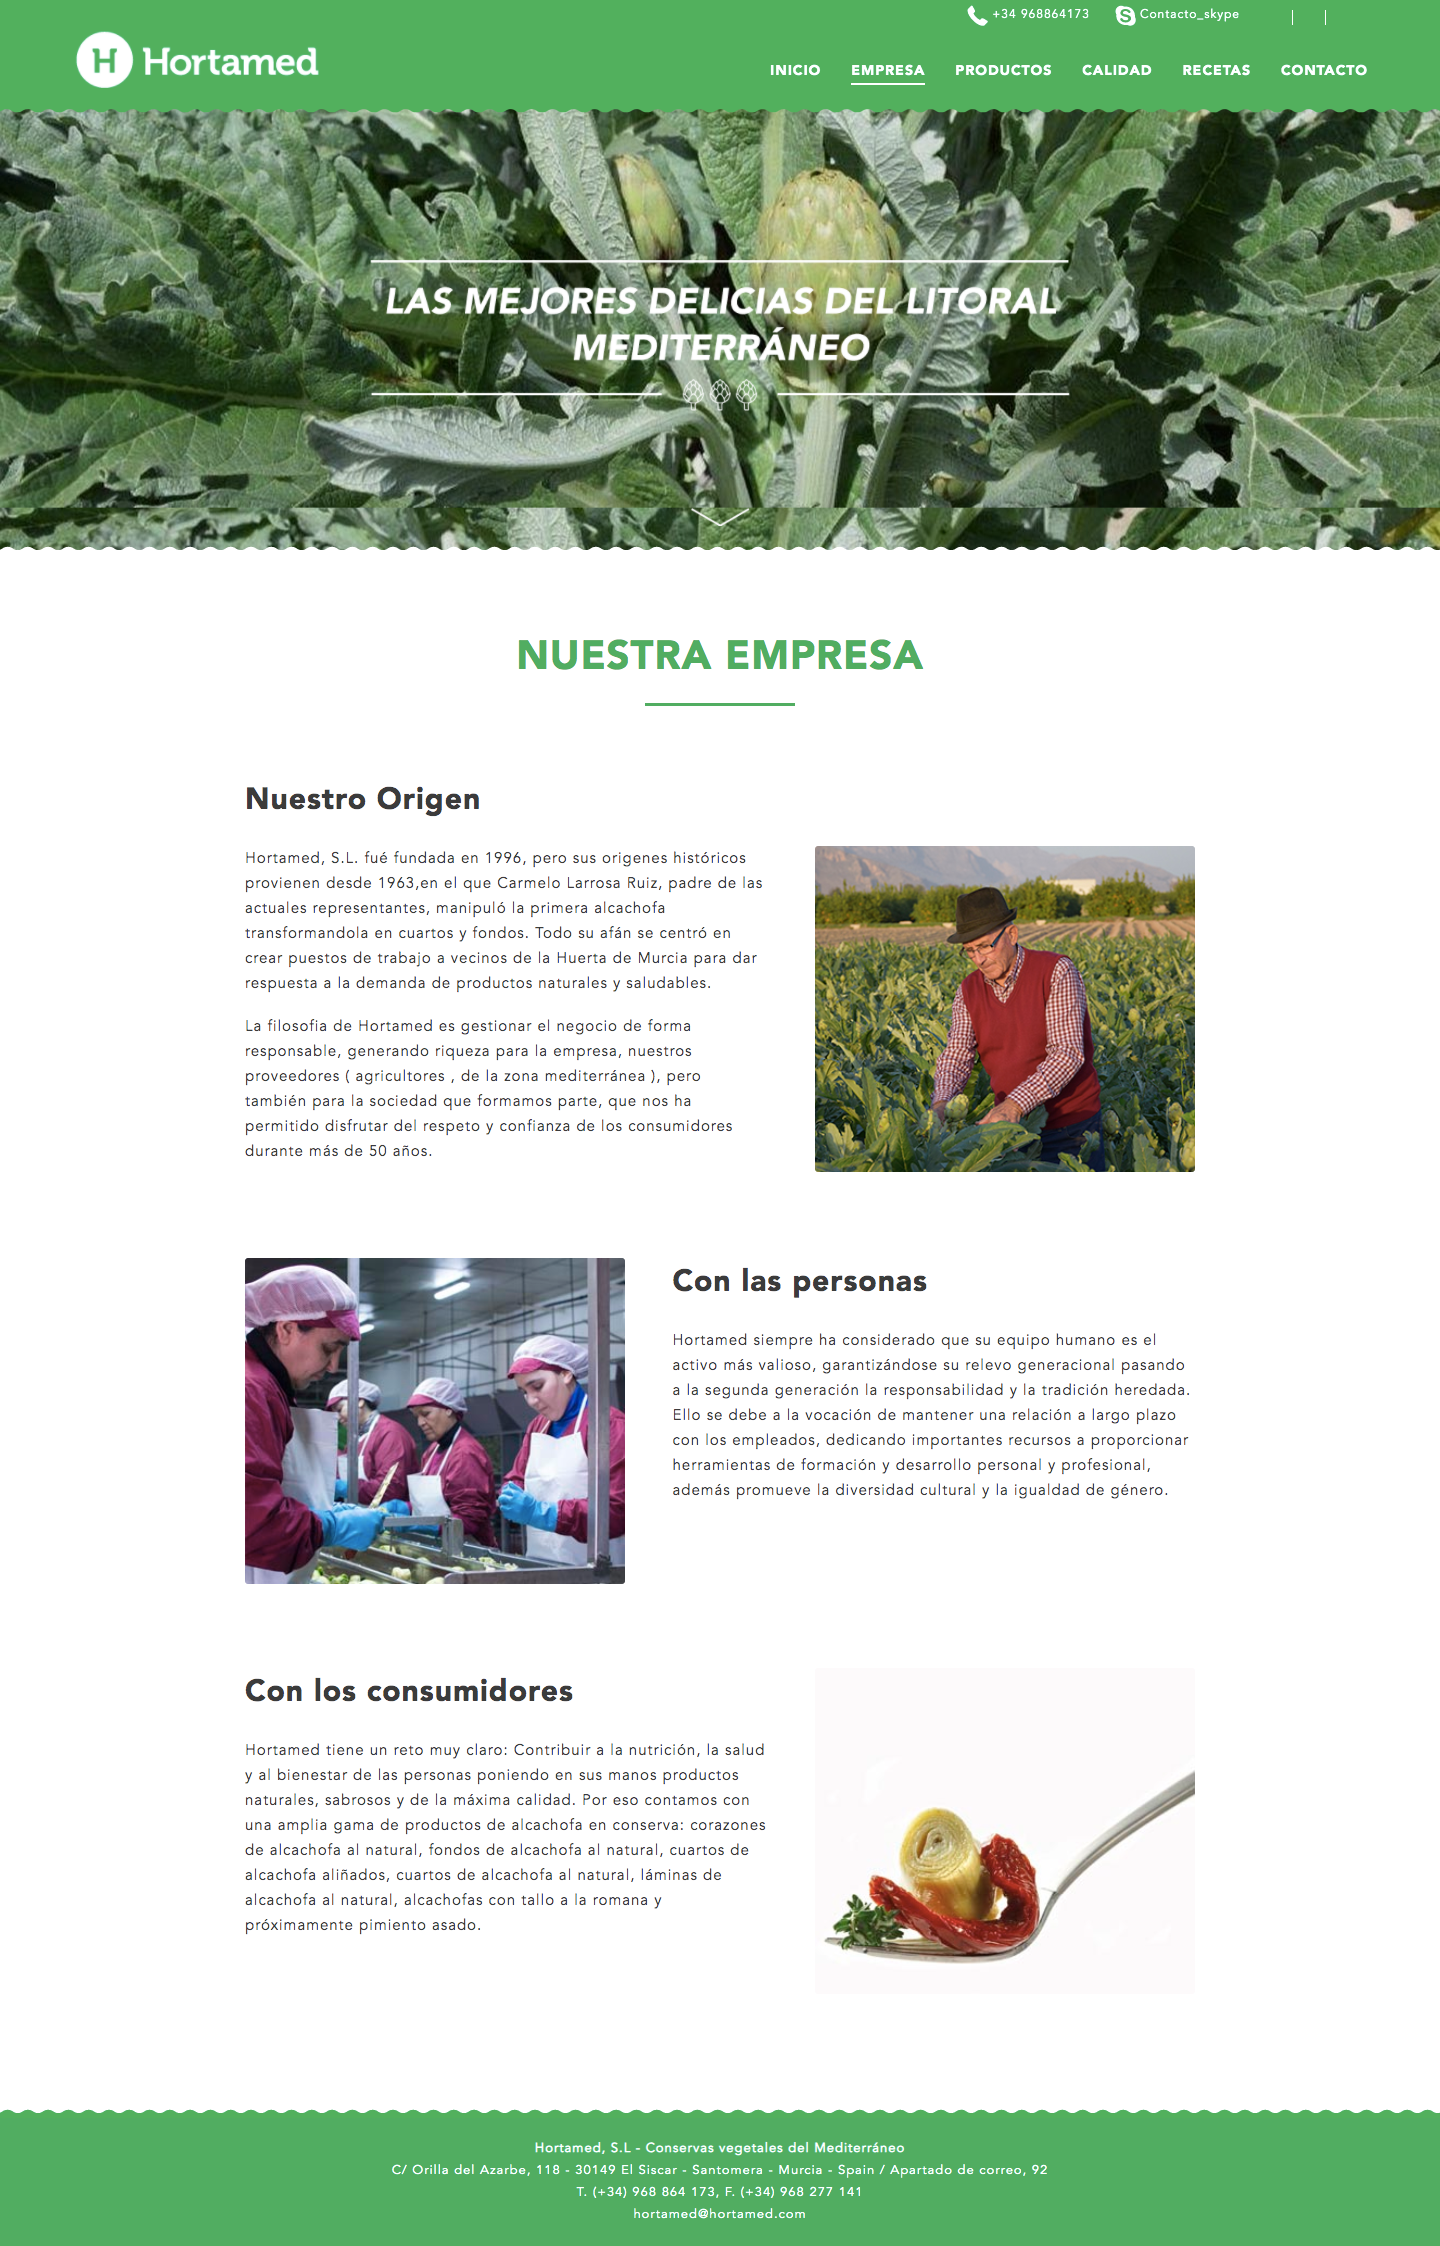 Agencia de marketing digital para empresas del sector hortofrutícola de Murcia, Madrid y Panamá City | Nómadas Comunicación Creativa